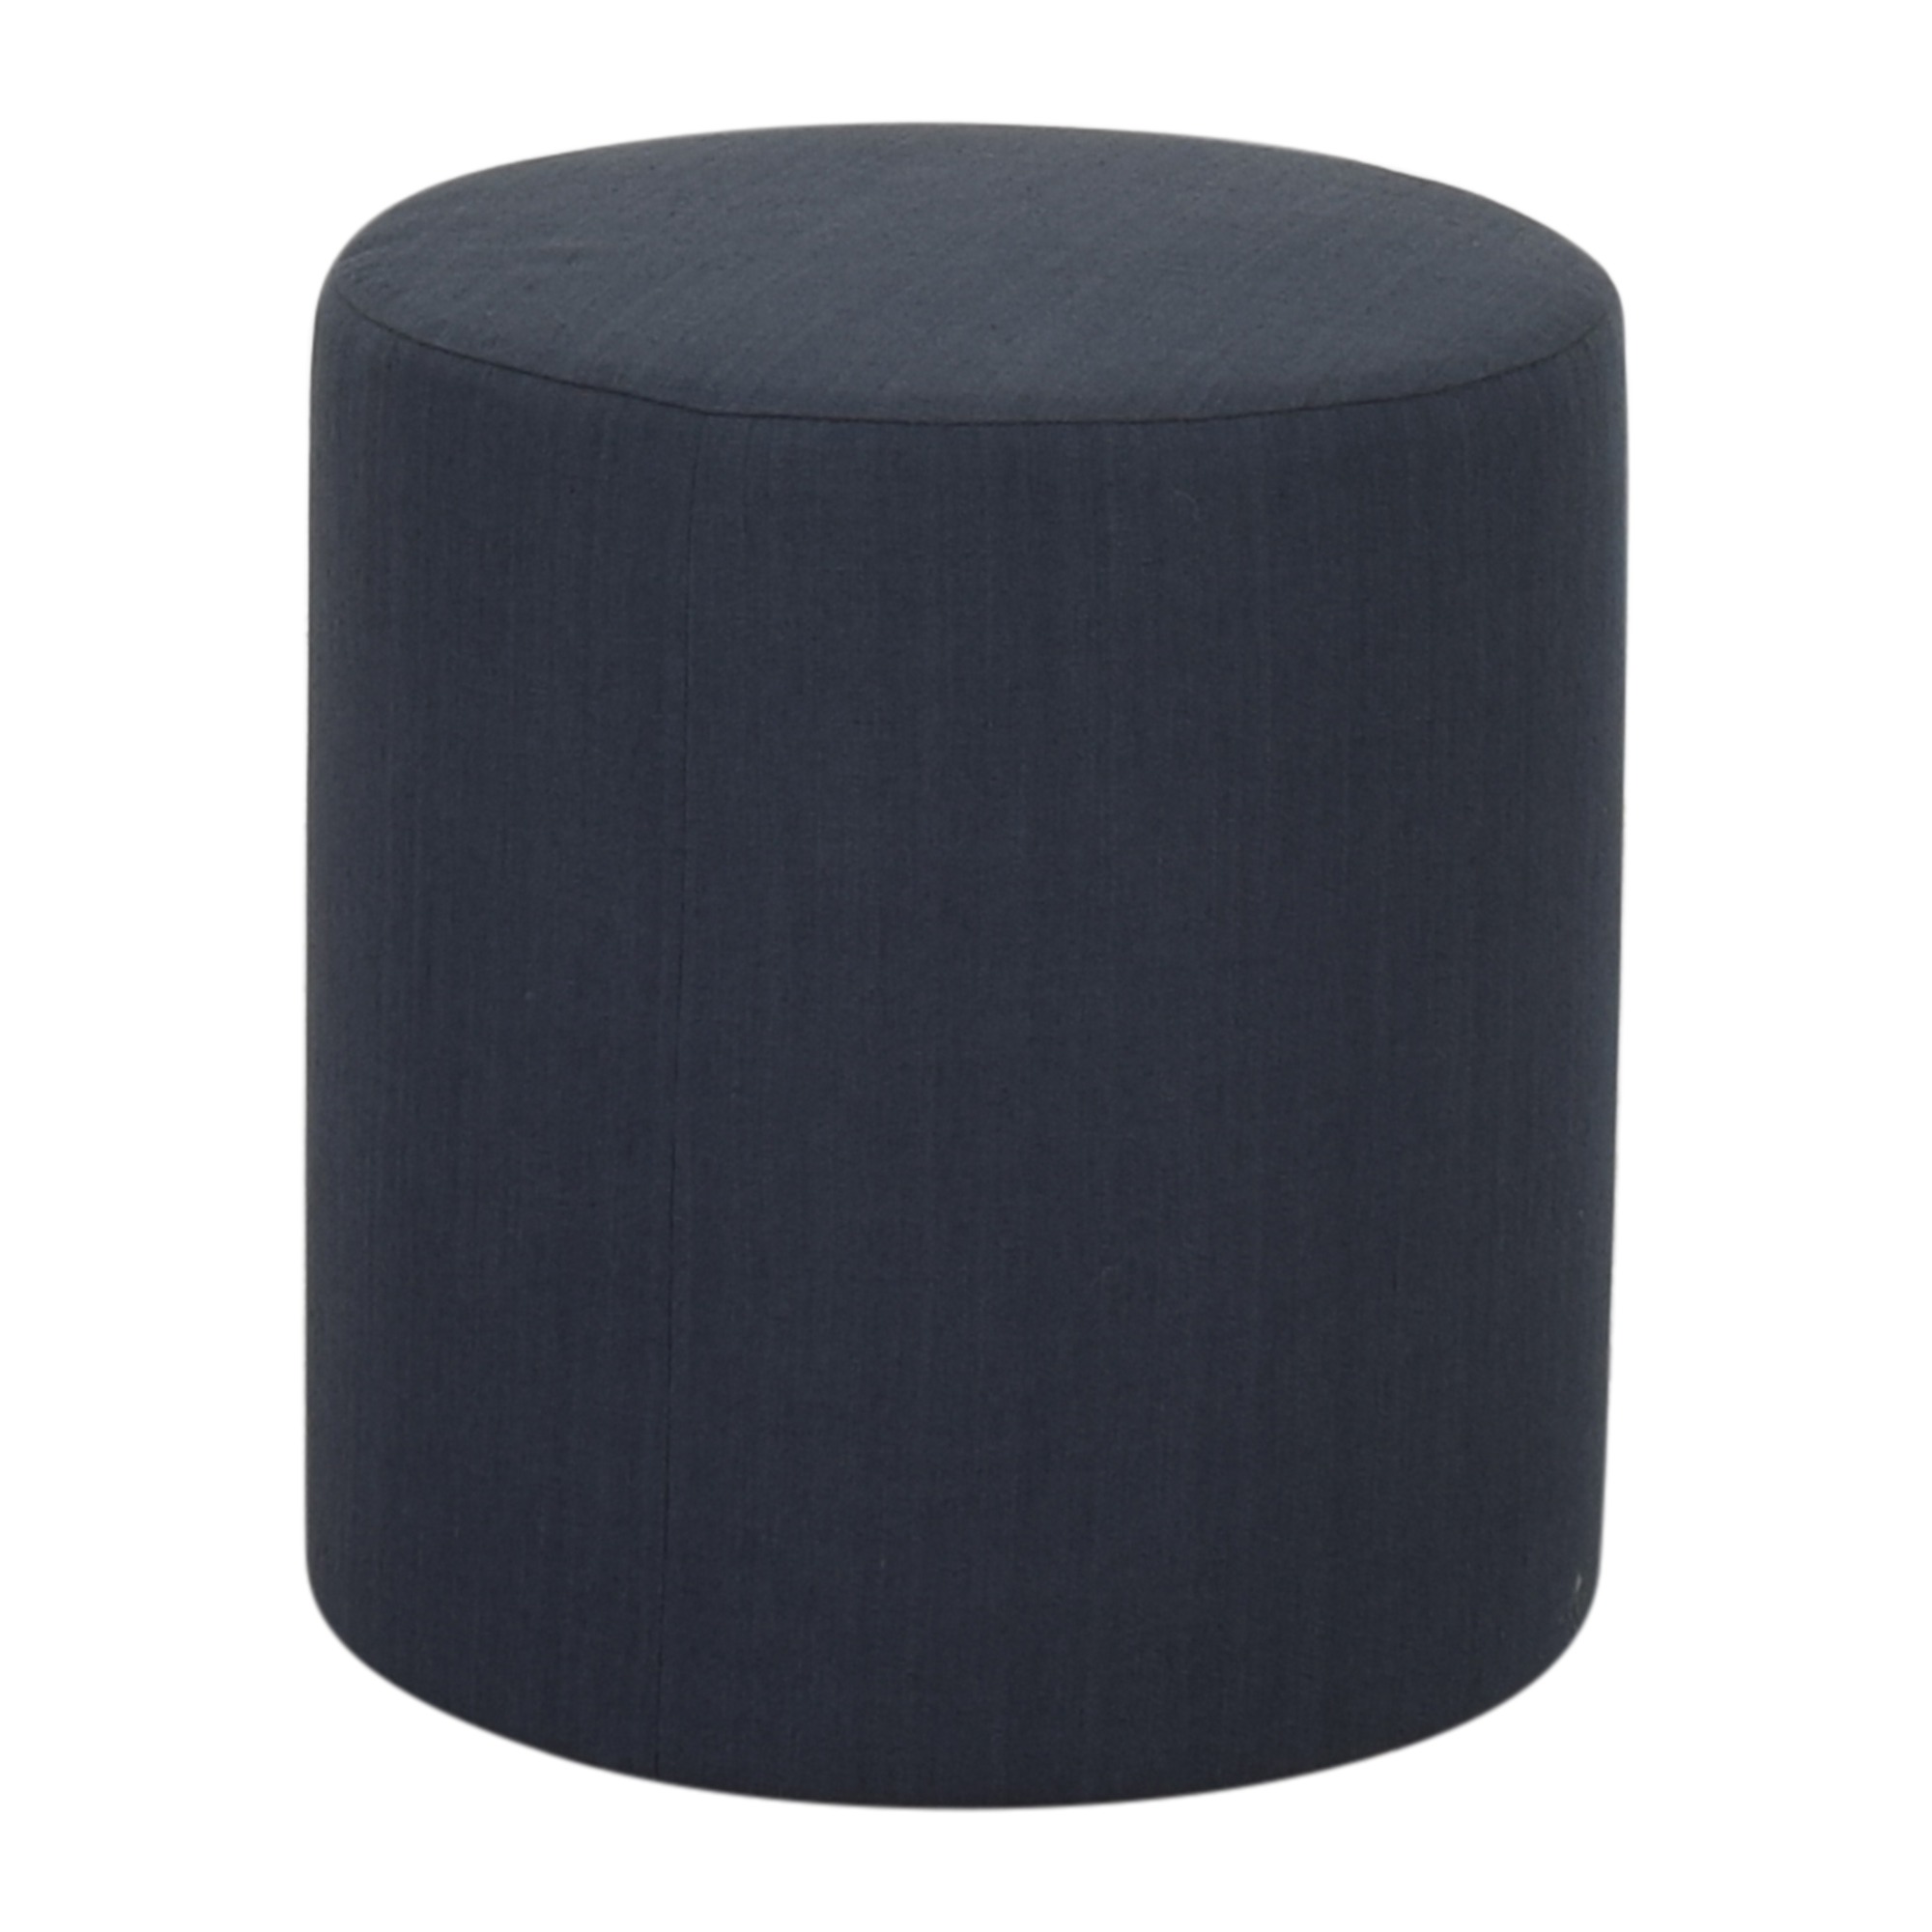 The Inside The Inside Drum Ottoman Ottomans